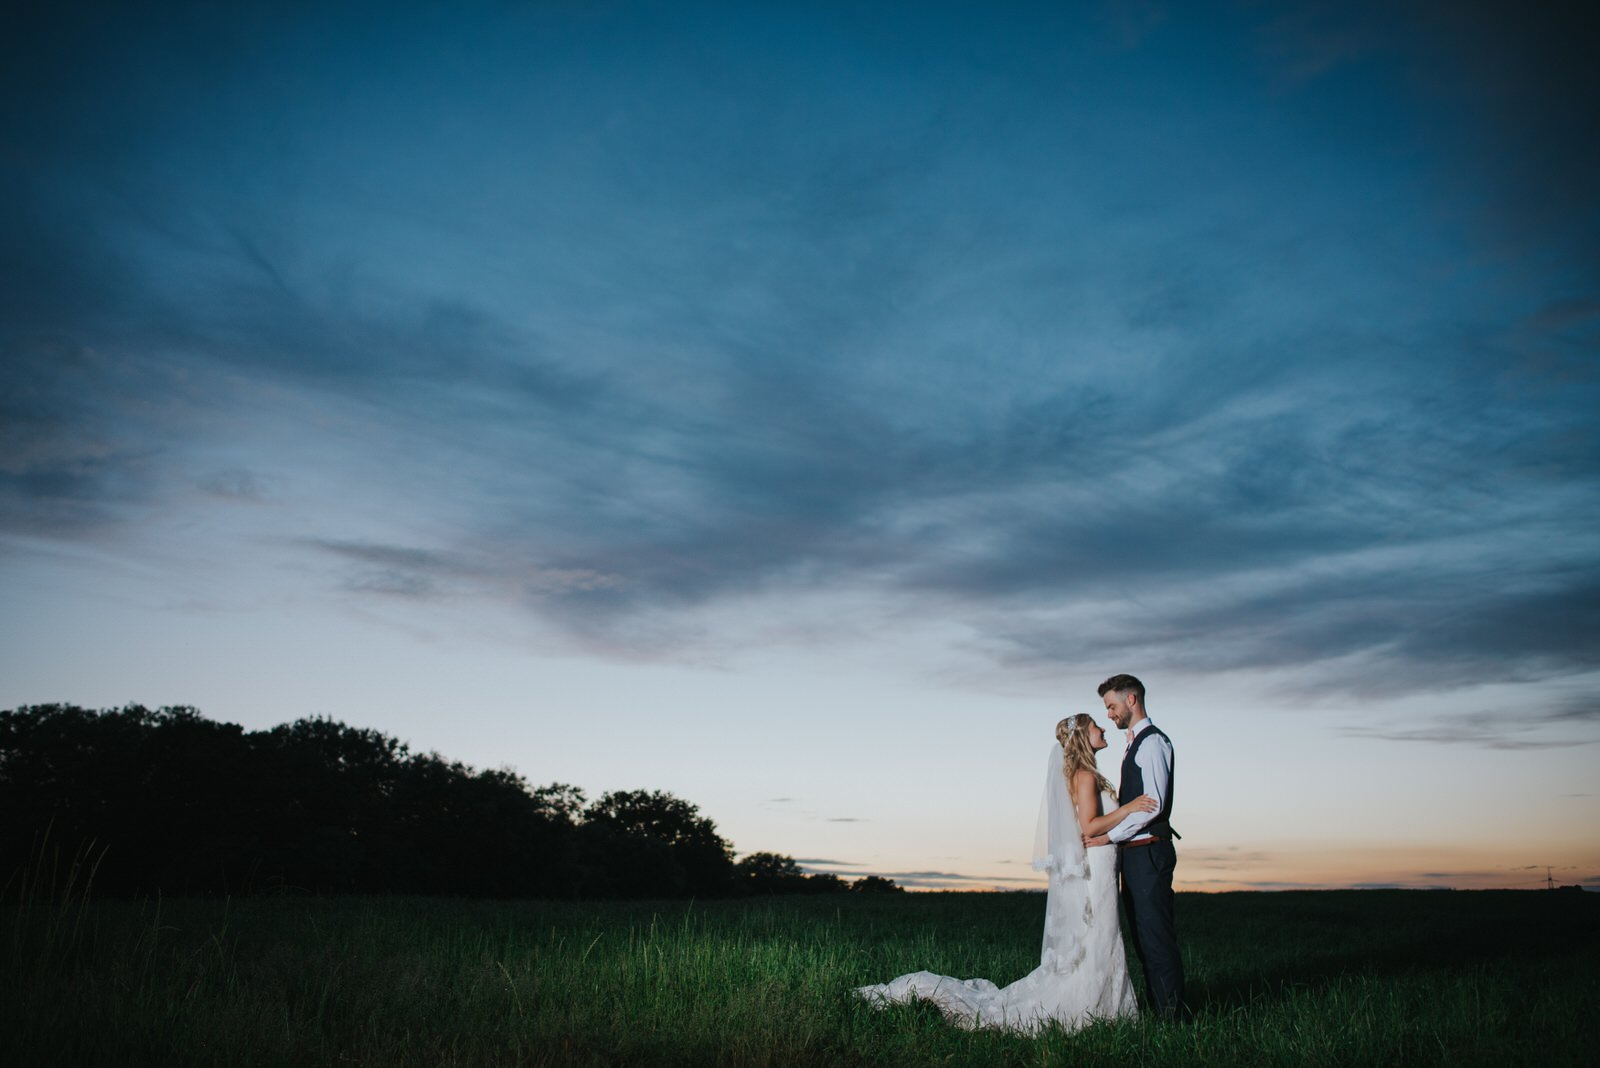 Devonweddingphotographeryetiphotography.jpgDSC_7746.jpg